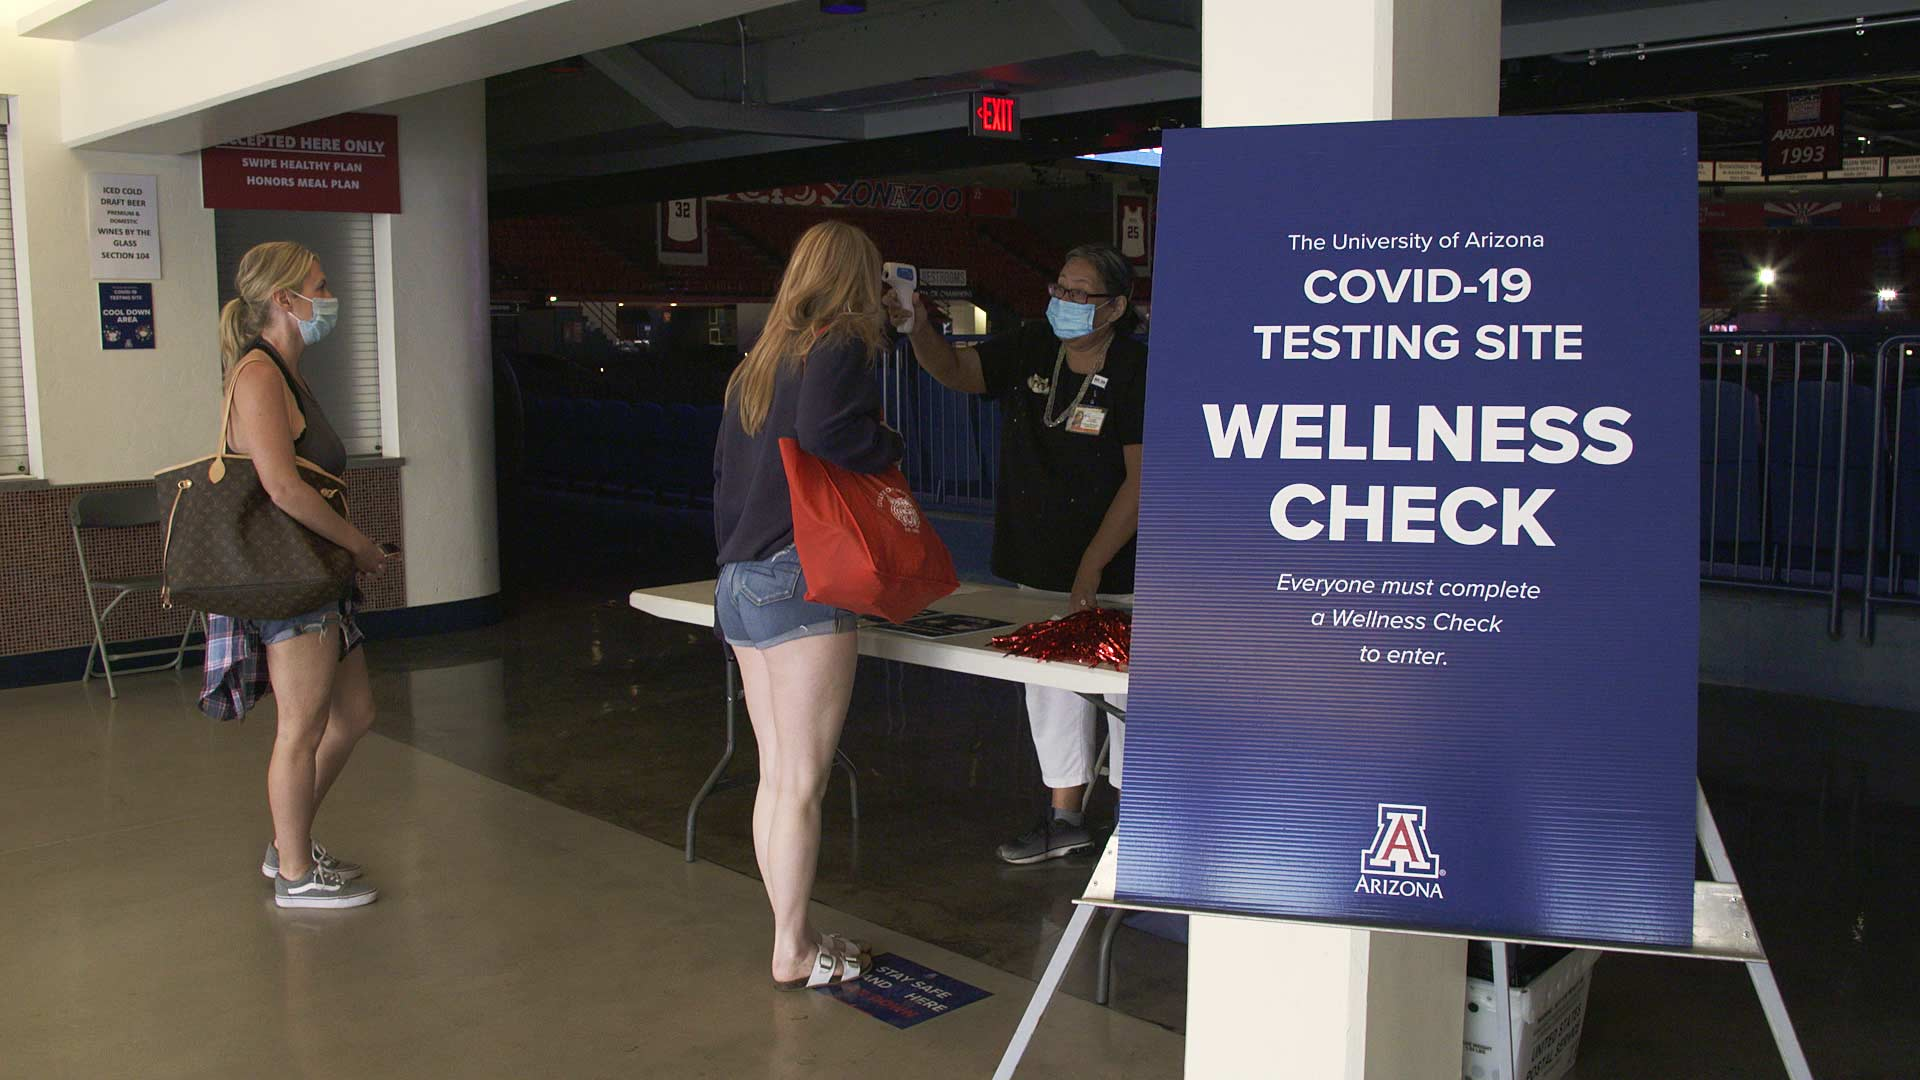 Students check in at a COVID-19 testing site at the University of Arizona. August 2020.